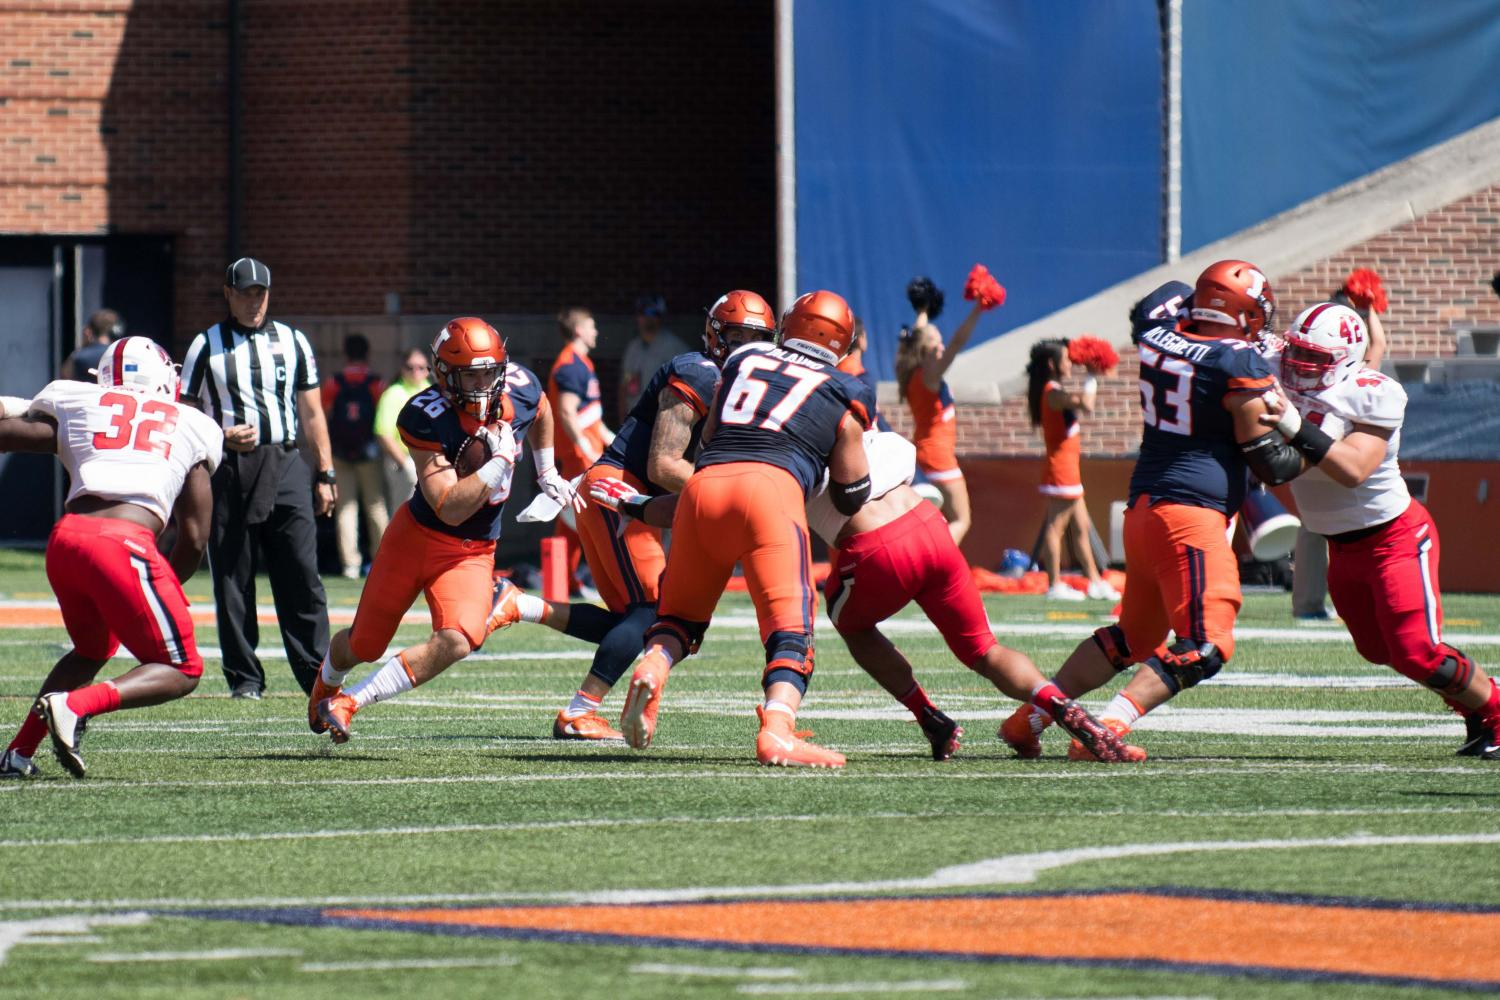 Illinois+running+back+Mike+Epstein+searches+for+a+hole+during+the+game+against+Ball+State+on+Saturday%2C+September+2%2C+at+Memorial+Stadium.